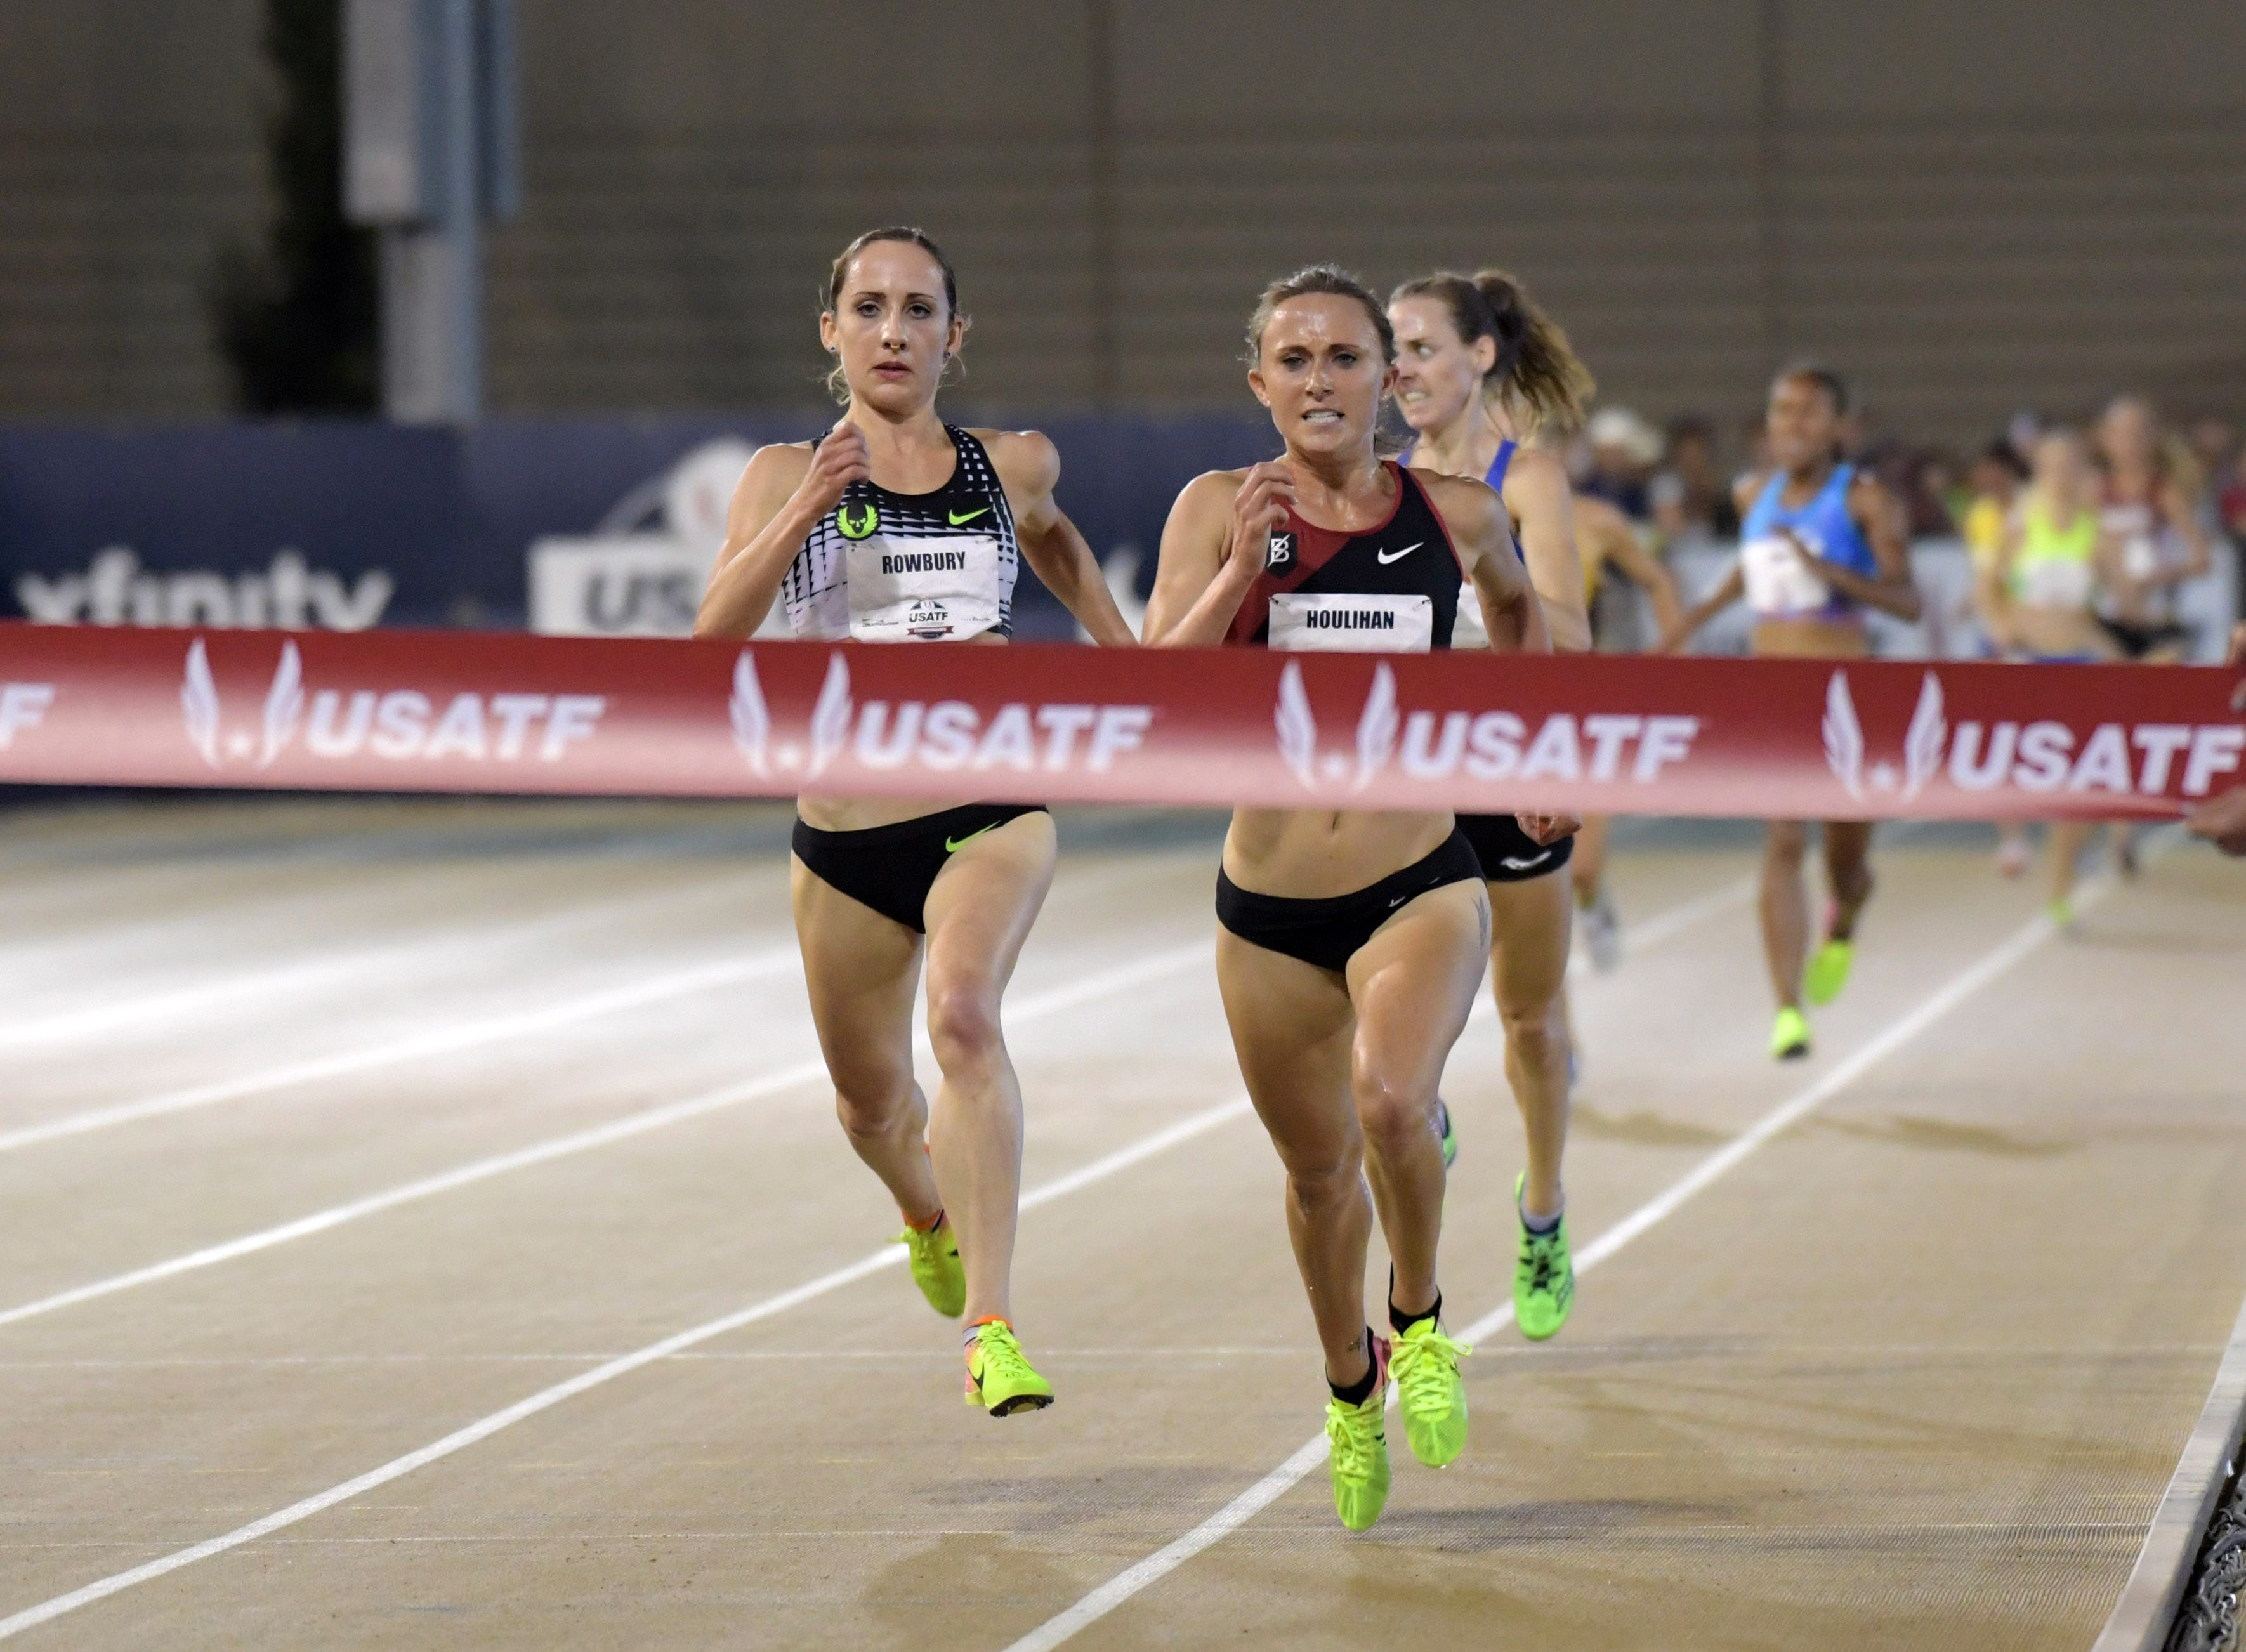 Record-setting American middle distance runner Shelby Houlihan tests positive for anabolic steroid